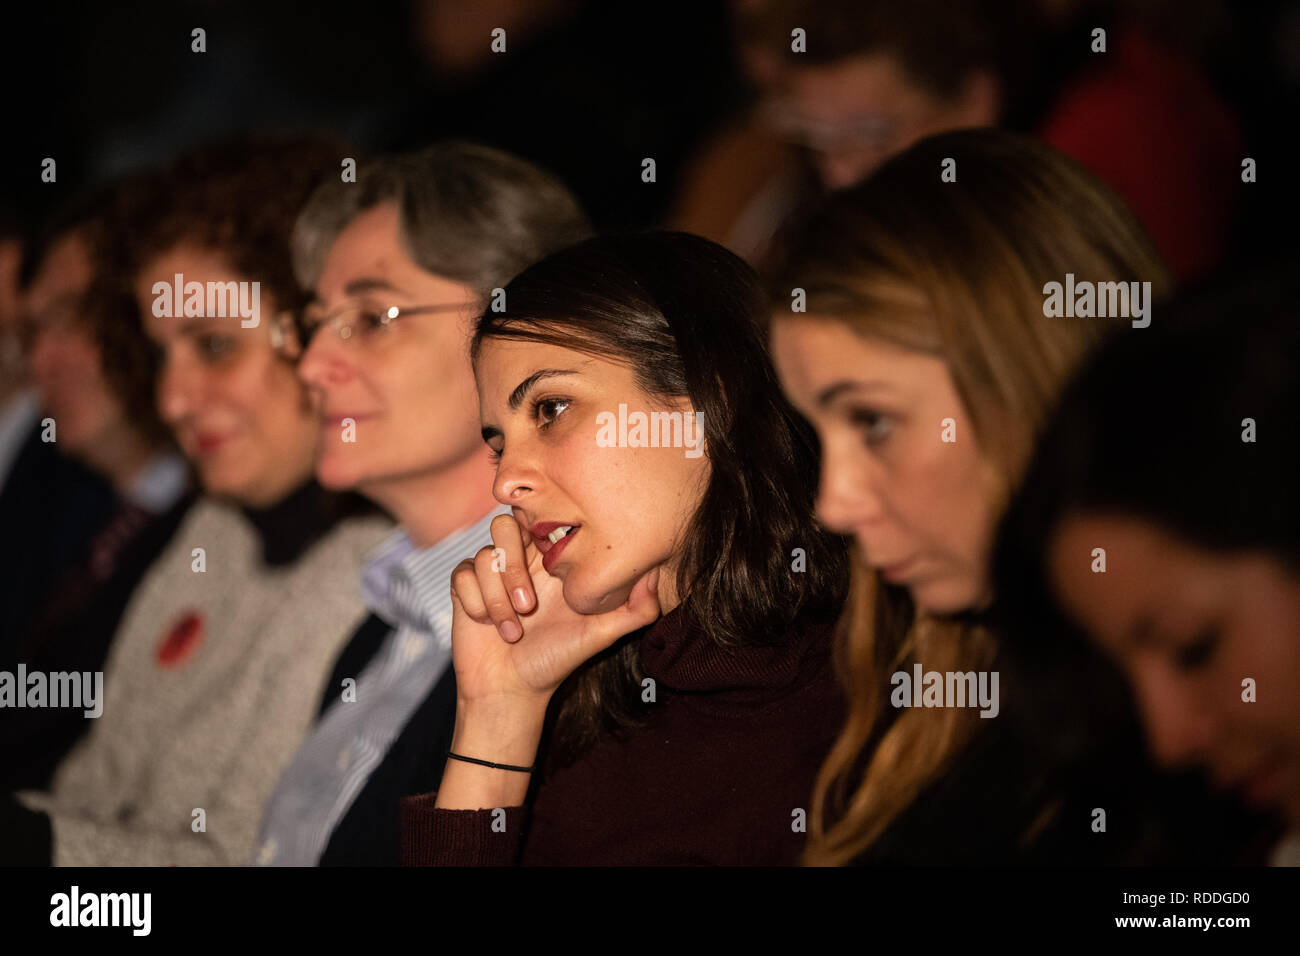 Rita Maestre, councilor of the Madrid City Council seen during the event. The Carabanchel Film Week has become one of the longest-running exhibitions in Madrid and has made it consolidate as the prelude to the Goya Awards. - Stock Image